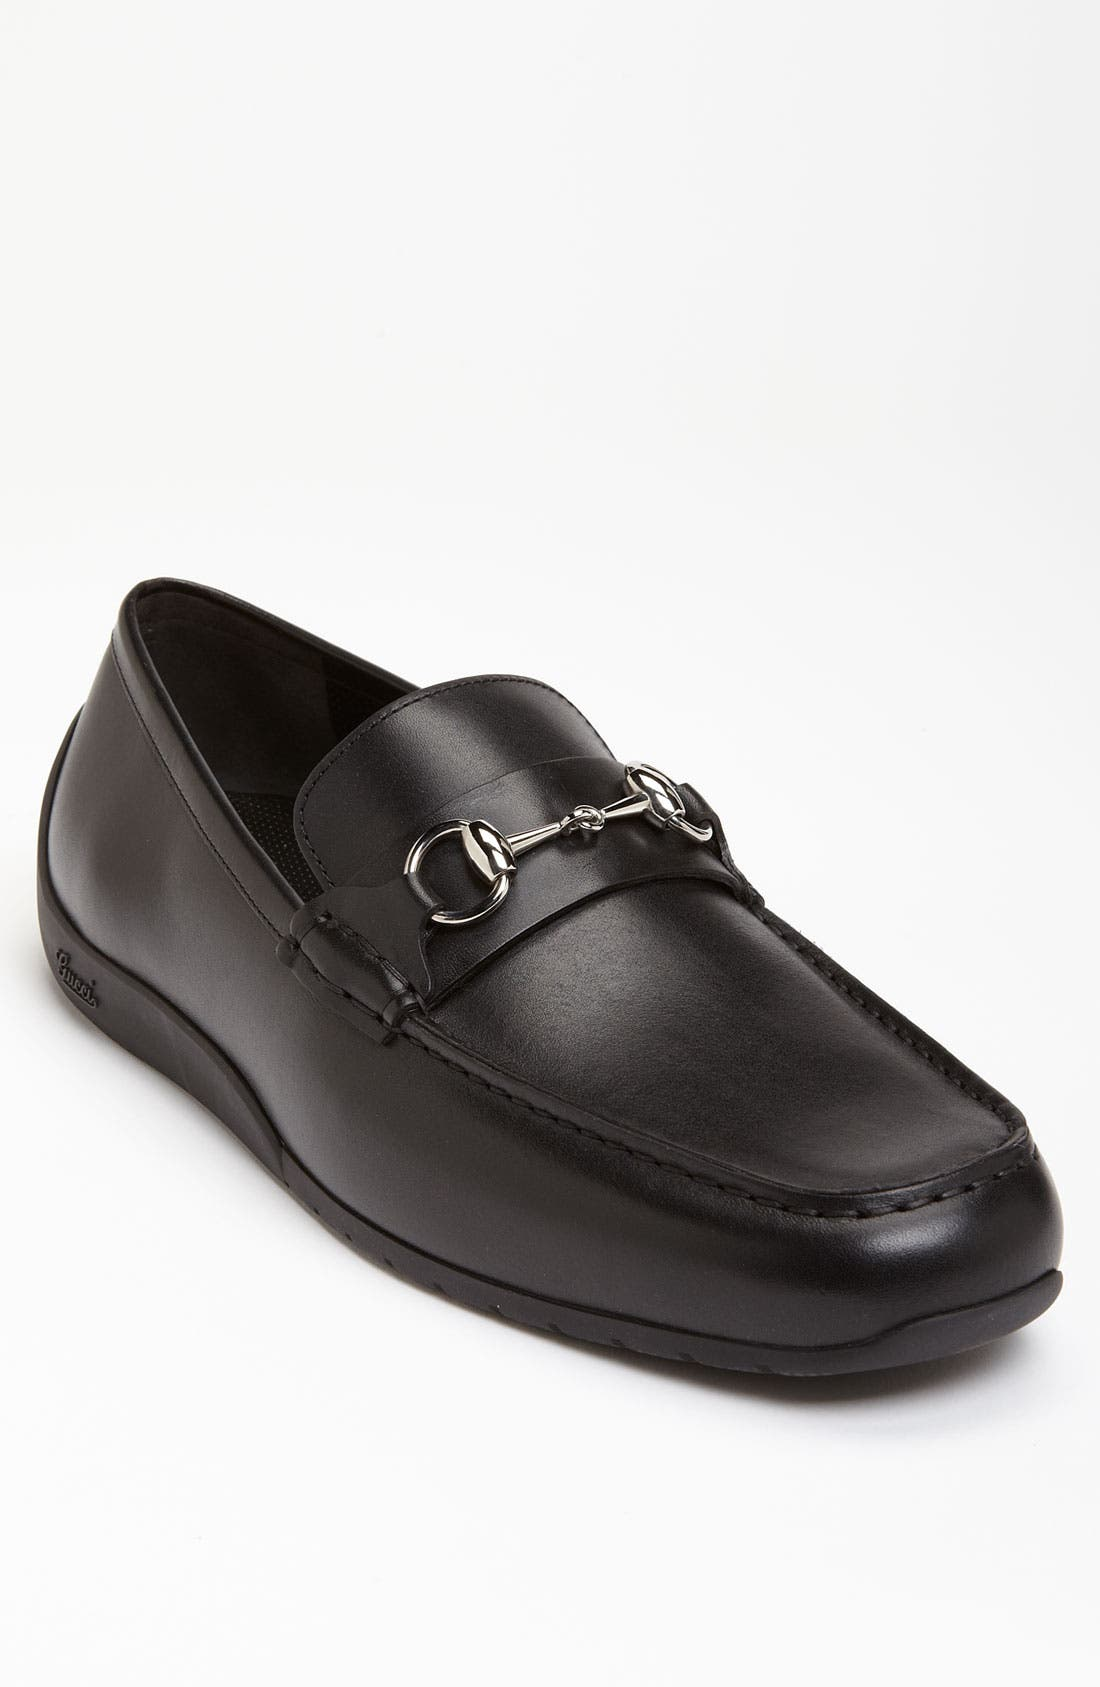 Main Image - Gucci 'Silverstone' Moccasin Loafer